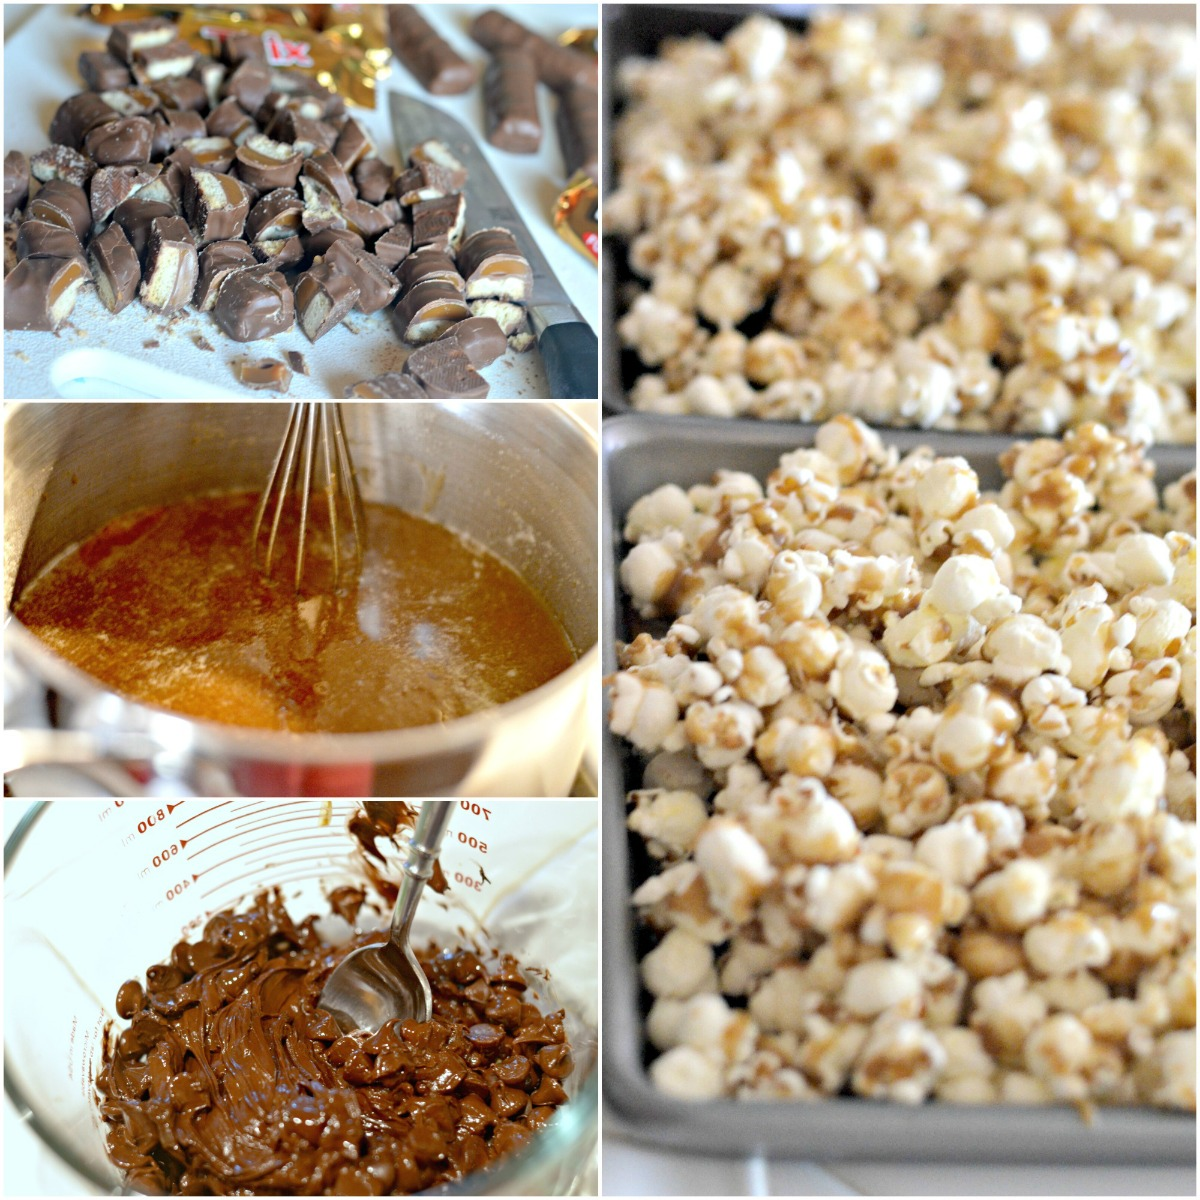 twix caramel popcorn recipe – the steps to make the Twix popcorn recipe